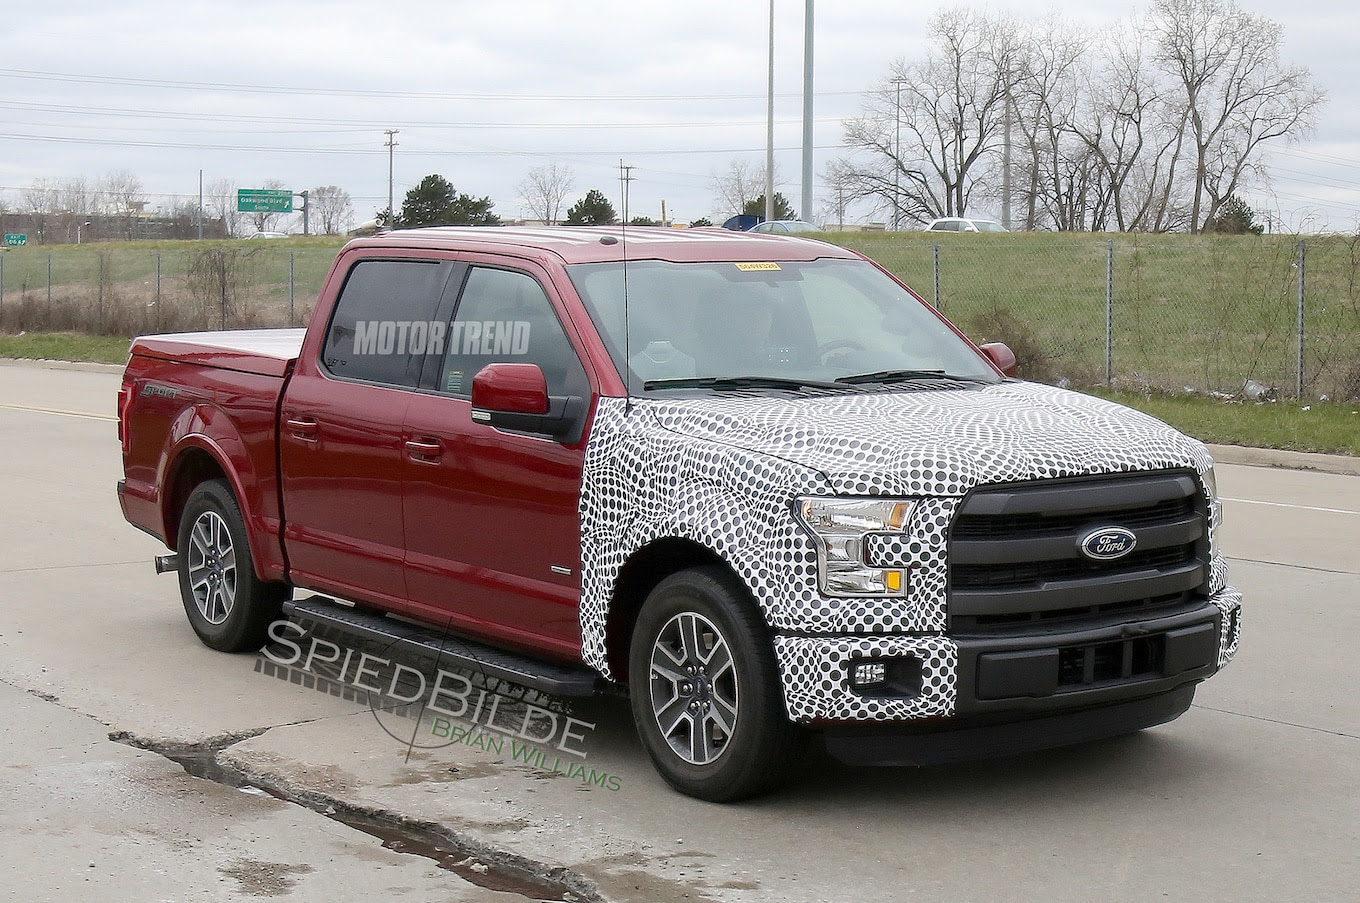 Spied: Ford F-150 Hybrid Prototype Tests on Public Roads ...